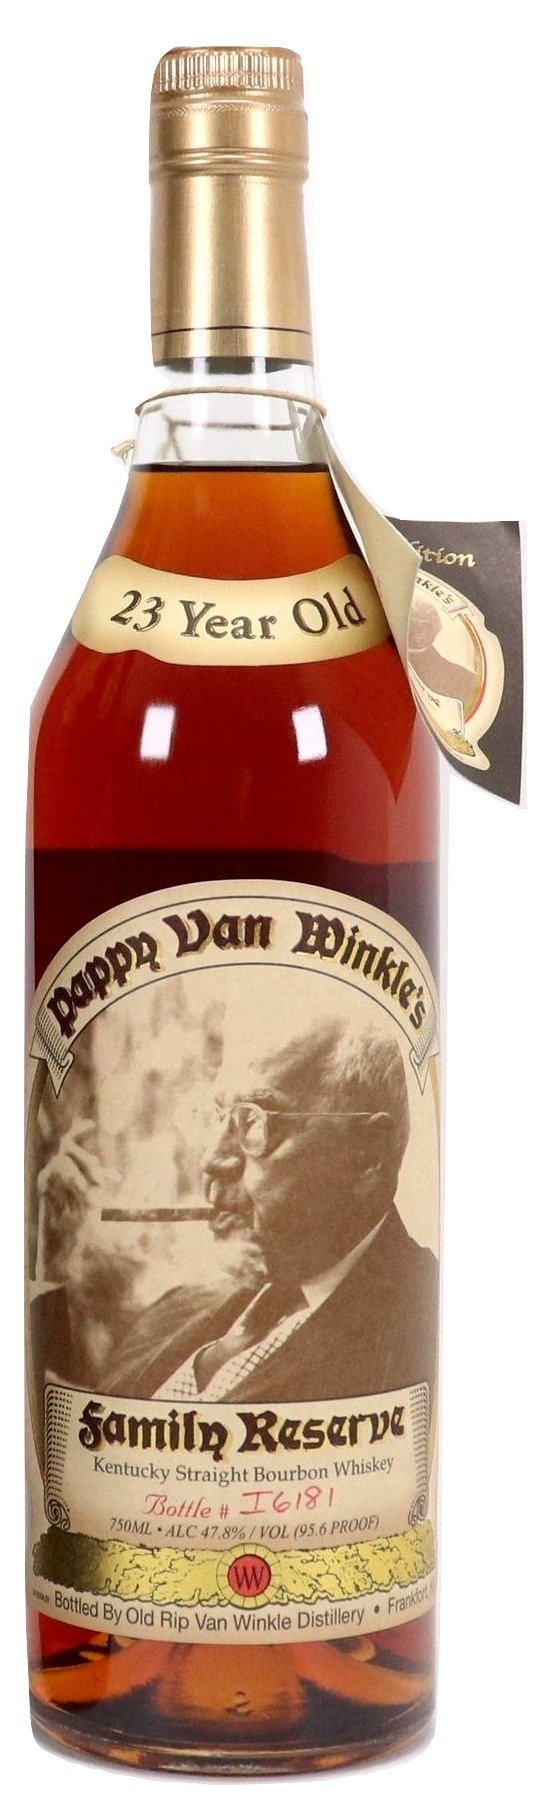 Pappy Van Winkle 23 Year Old Family Reserve For Sale - NativeSpiritsOnline